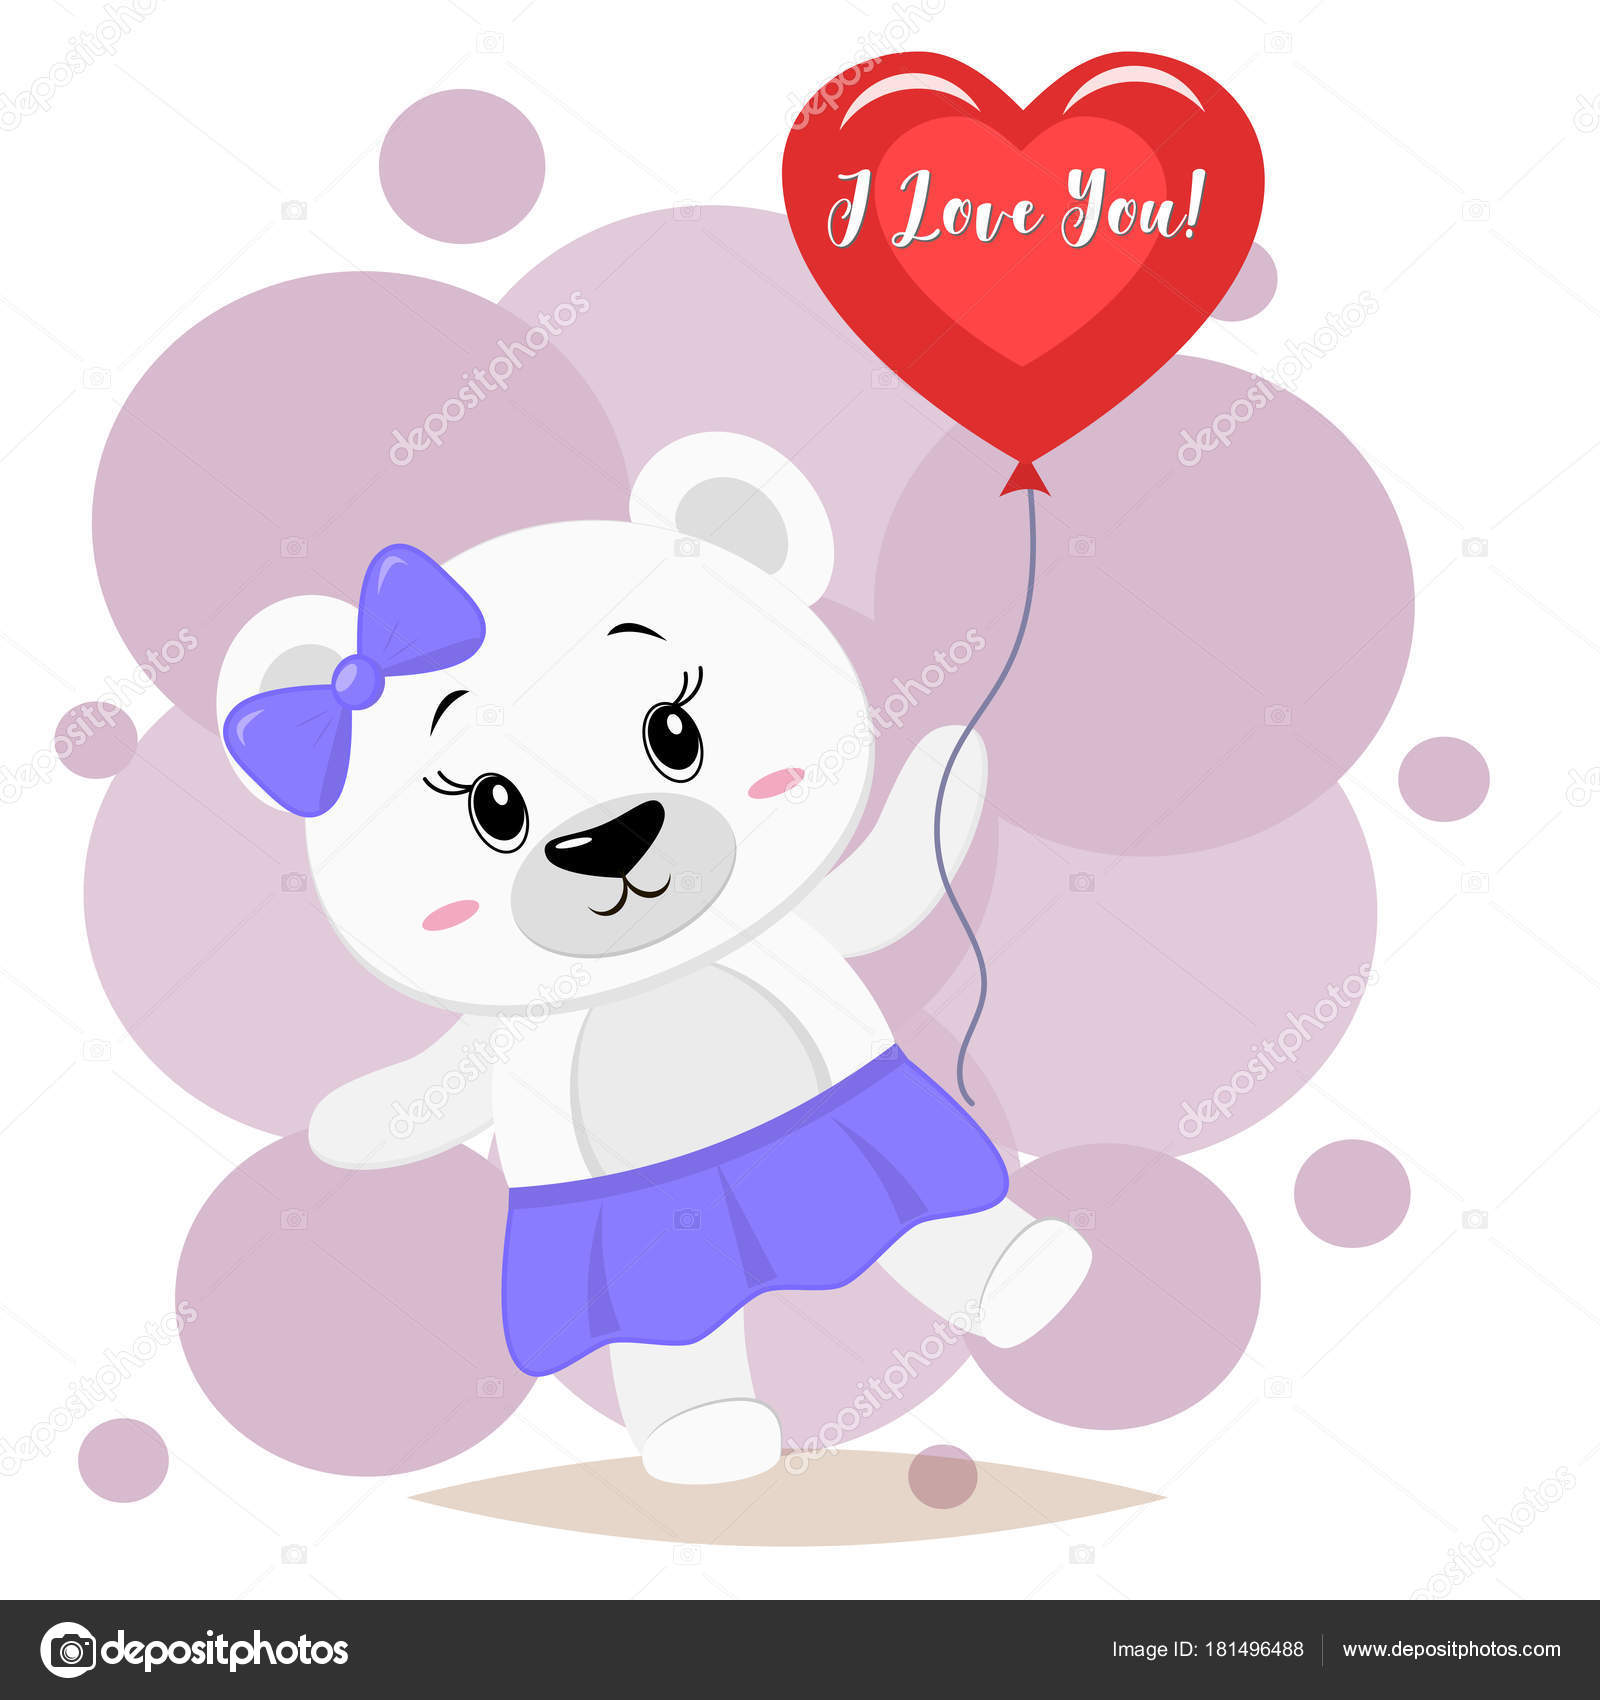 ed88bd2b9 Polar bear with a purple bow holds a red ball in the paws, in the ...